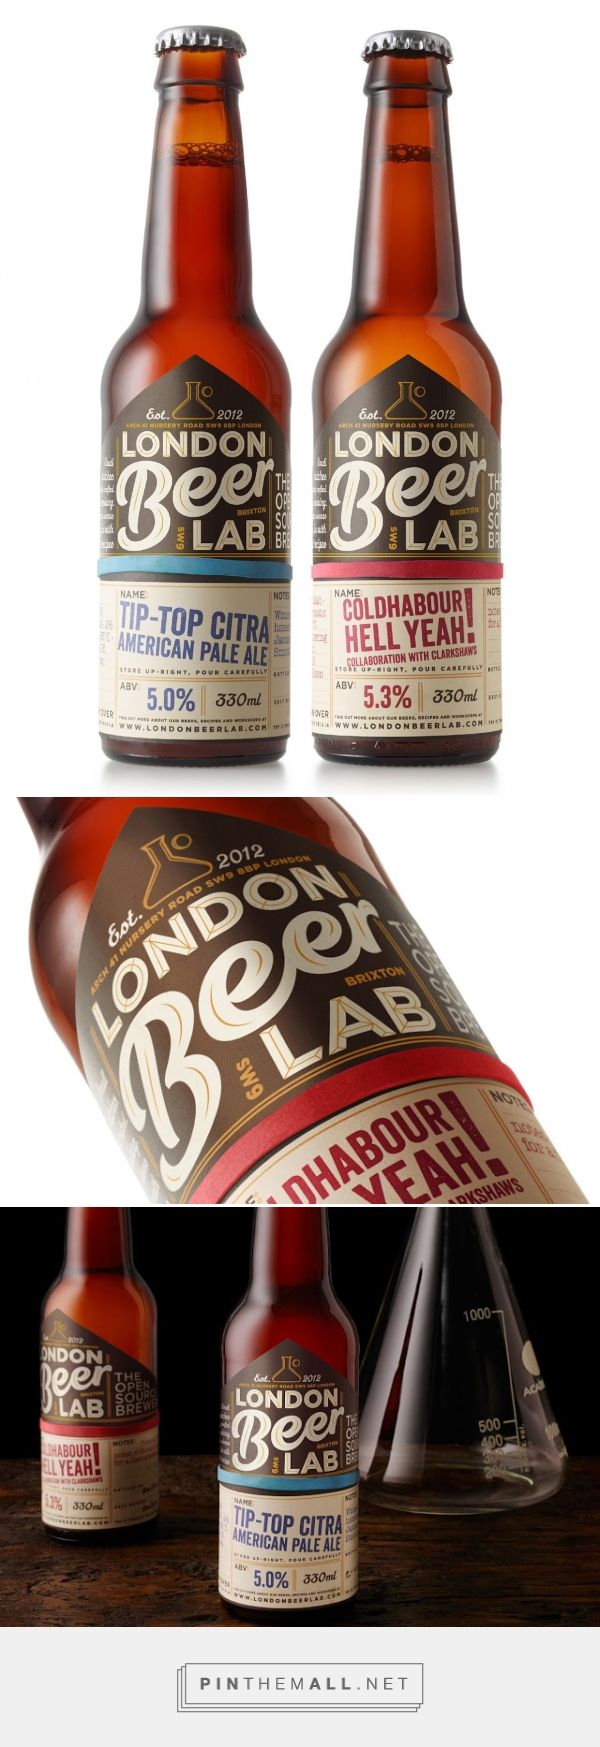 London Beer Lab packaging label designed by Elmwood Brand Design (UK) - http://www.packagingoftheworld.com/2016/01/london-beer-lab.html